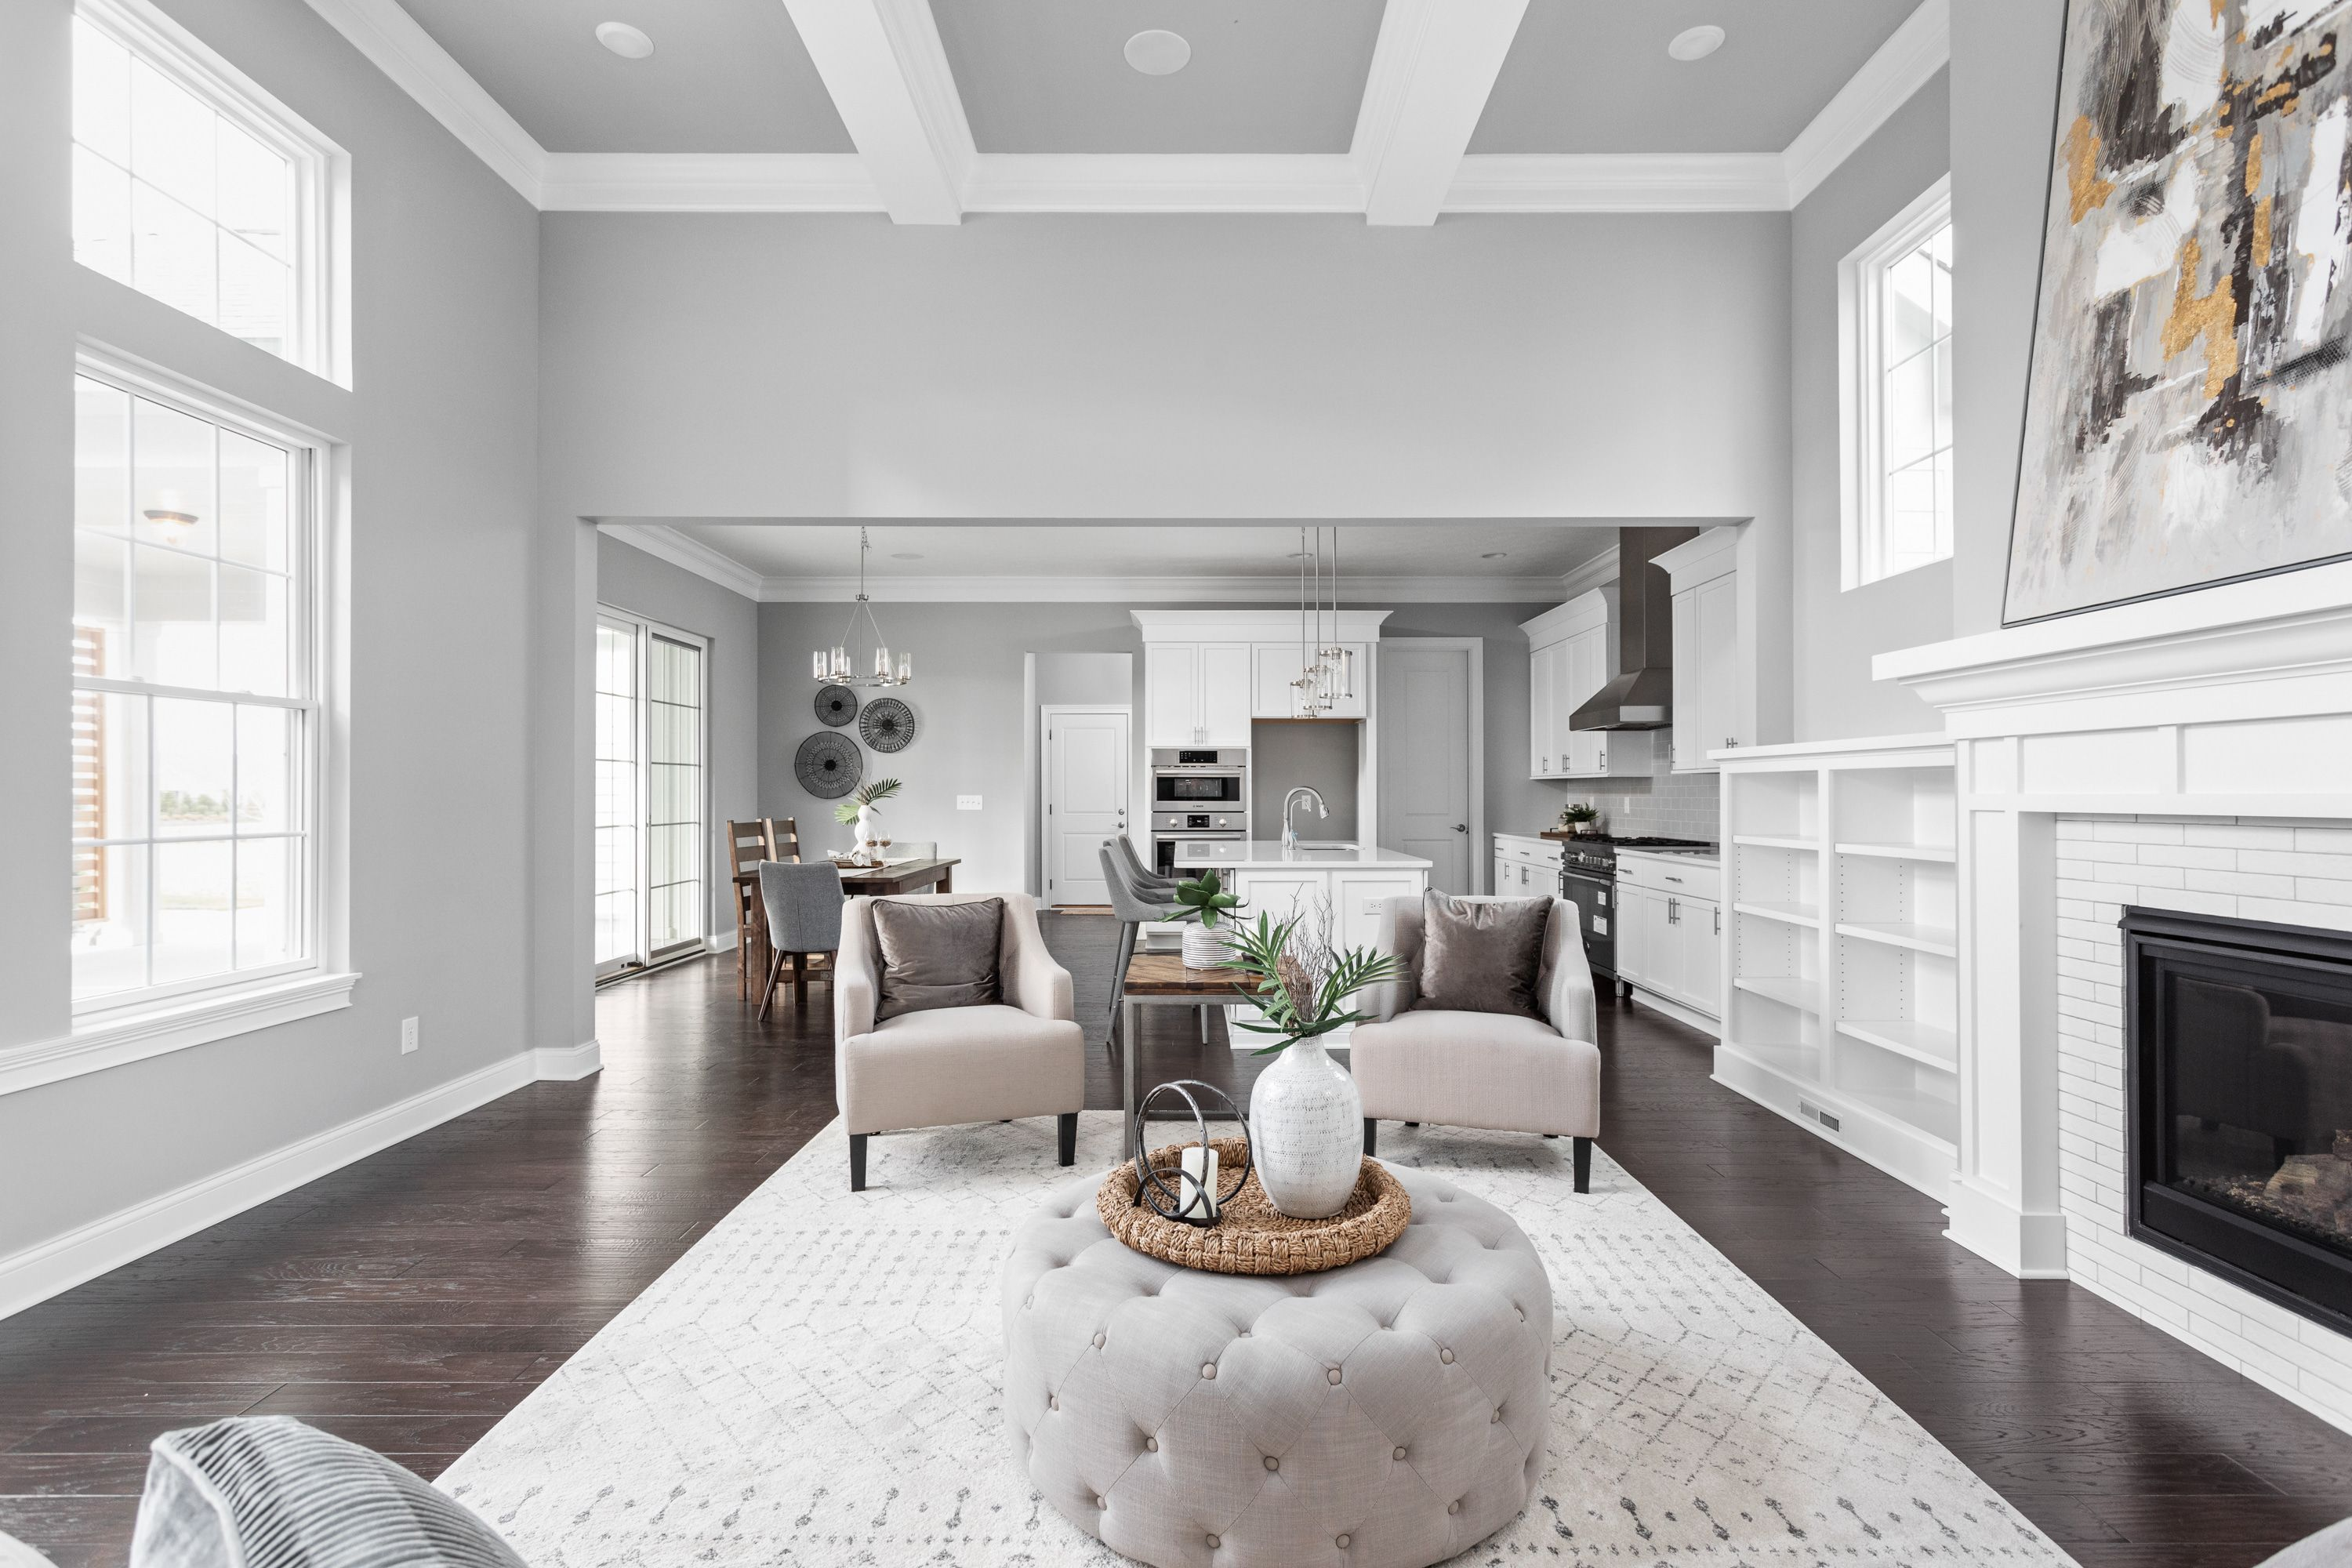 Living Area featured in the Lockerbie 323 By Estridge Homes in Indianapolis, IN